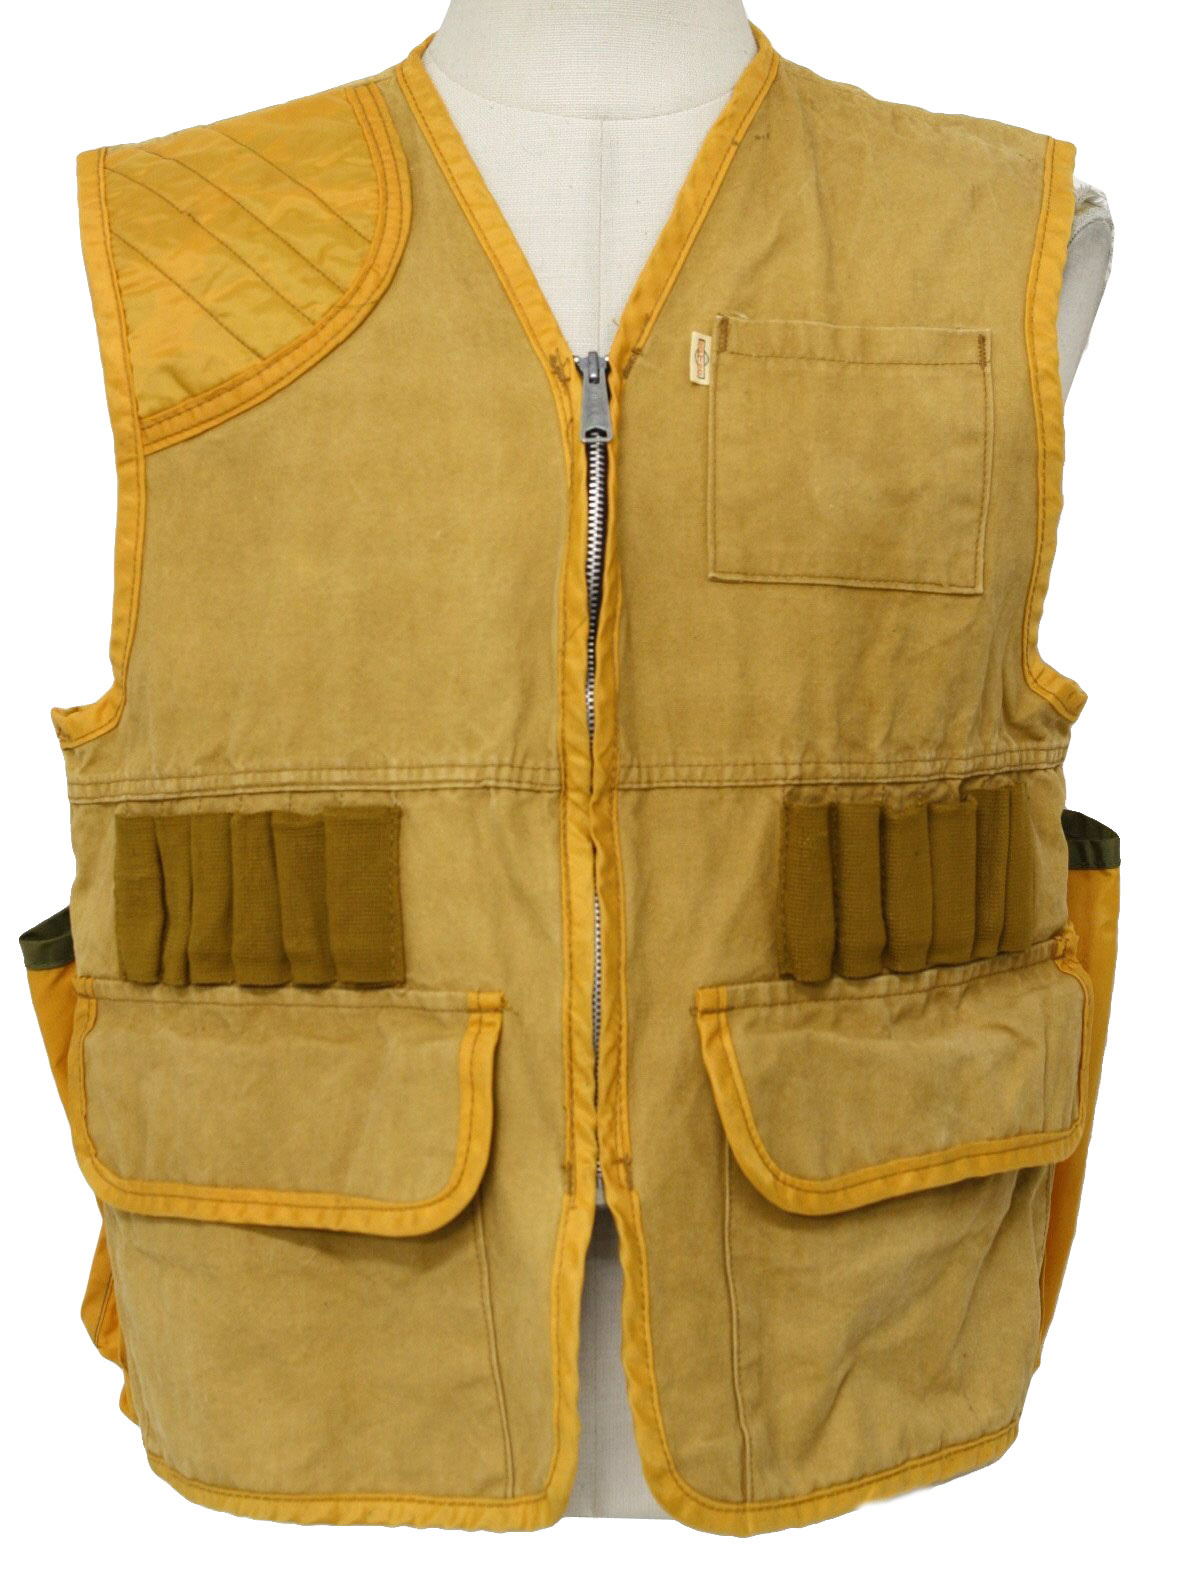 9f52d92d8a1a3 1960's Vintage SafTbak Vest: 60s -SafTbak- Mens tan, orange-gold and brown  cotton canvas and nylon hunting vest. There is a removable game pack  attached to ...